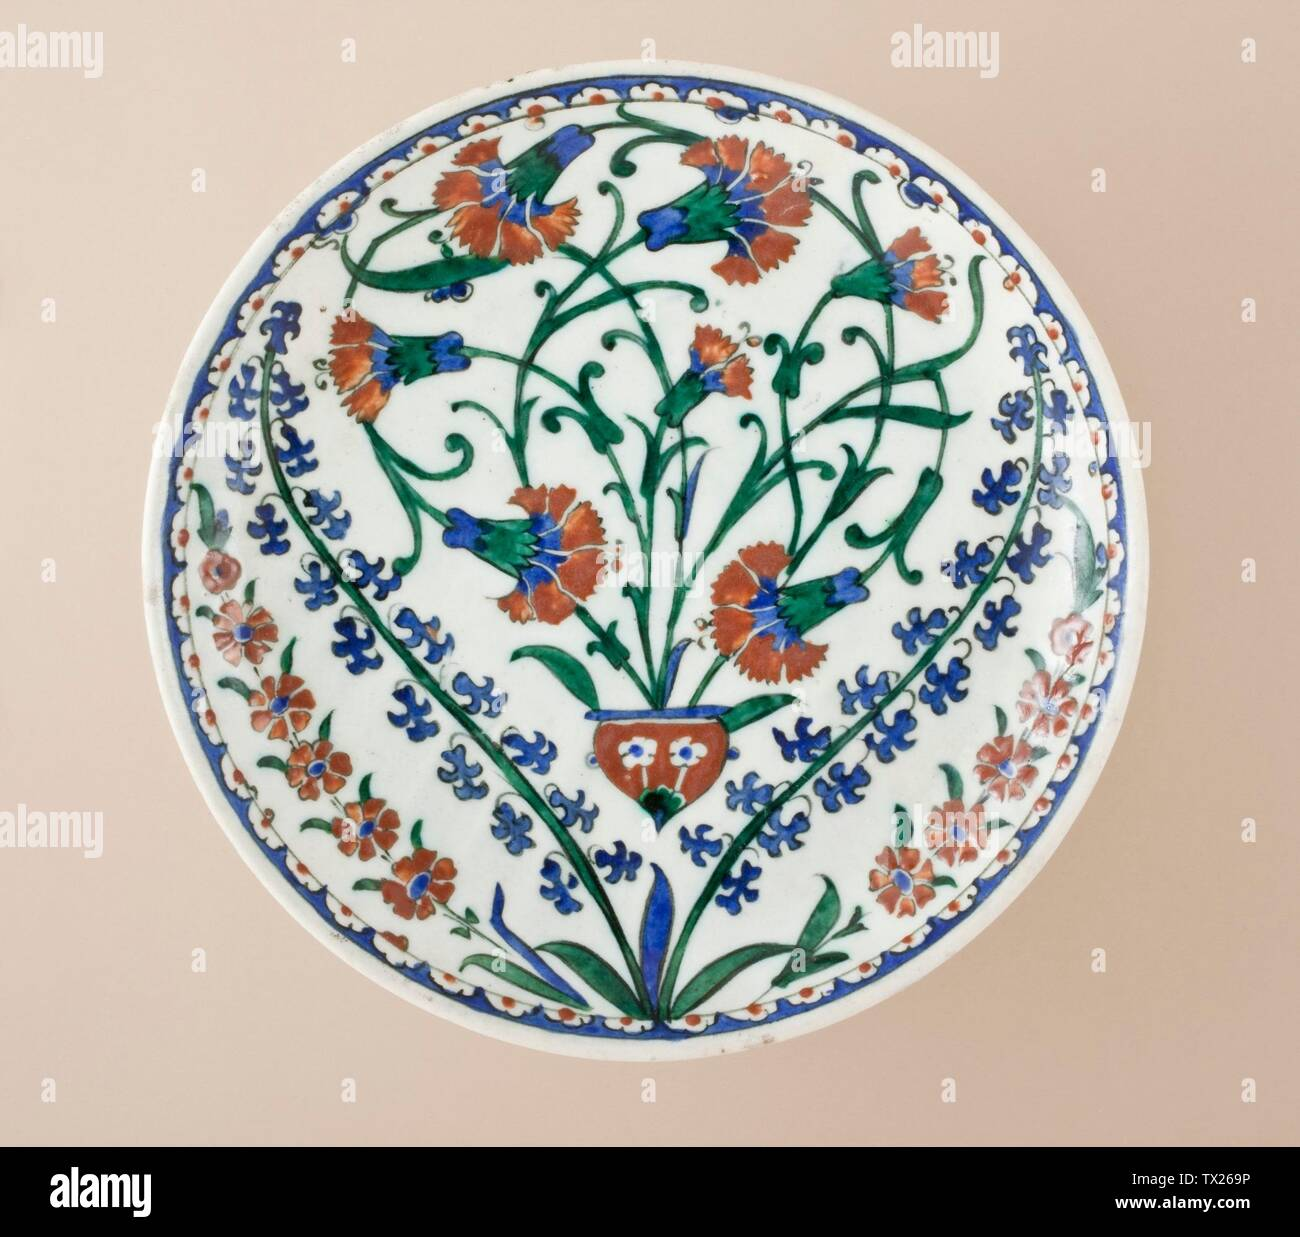 'Dish; English:  Turkey, Iznik, 1560-1585 Furnishings; Serviceware Fritware, underglaze-painted Height:  1 15/16 in. (5 cm); Diameter:  11 in. (28 cm) Purchased with funds provided by Camilla Chandler Frost (M.2006.130) Islamic Art; between 1560 and 1585 date QS:P571,+1550-00-00T00:00:00Z/7,P1319,+1560-00-00T00:00:00Z/9,P1326,+1585-00-00T00:00:00Z/9; ' - Stock Image